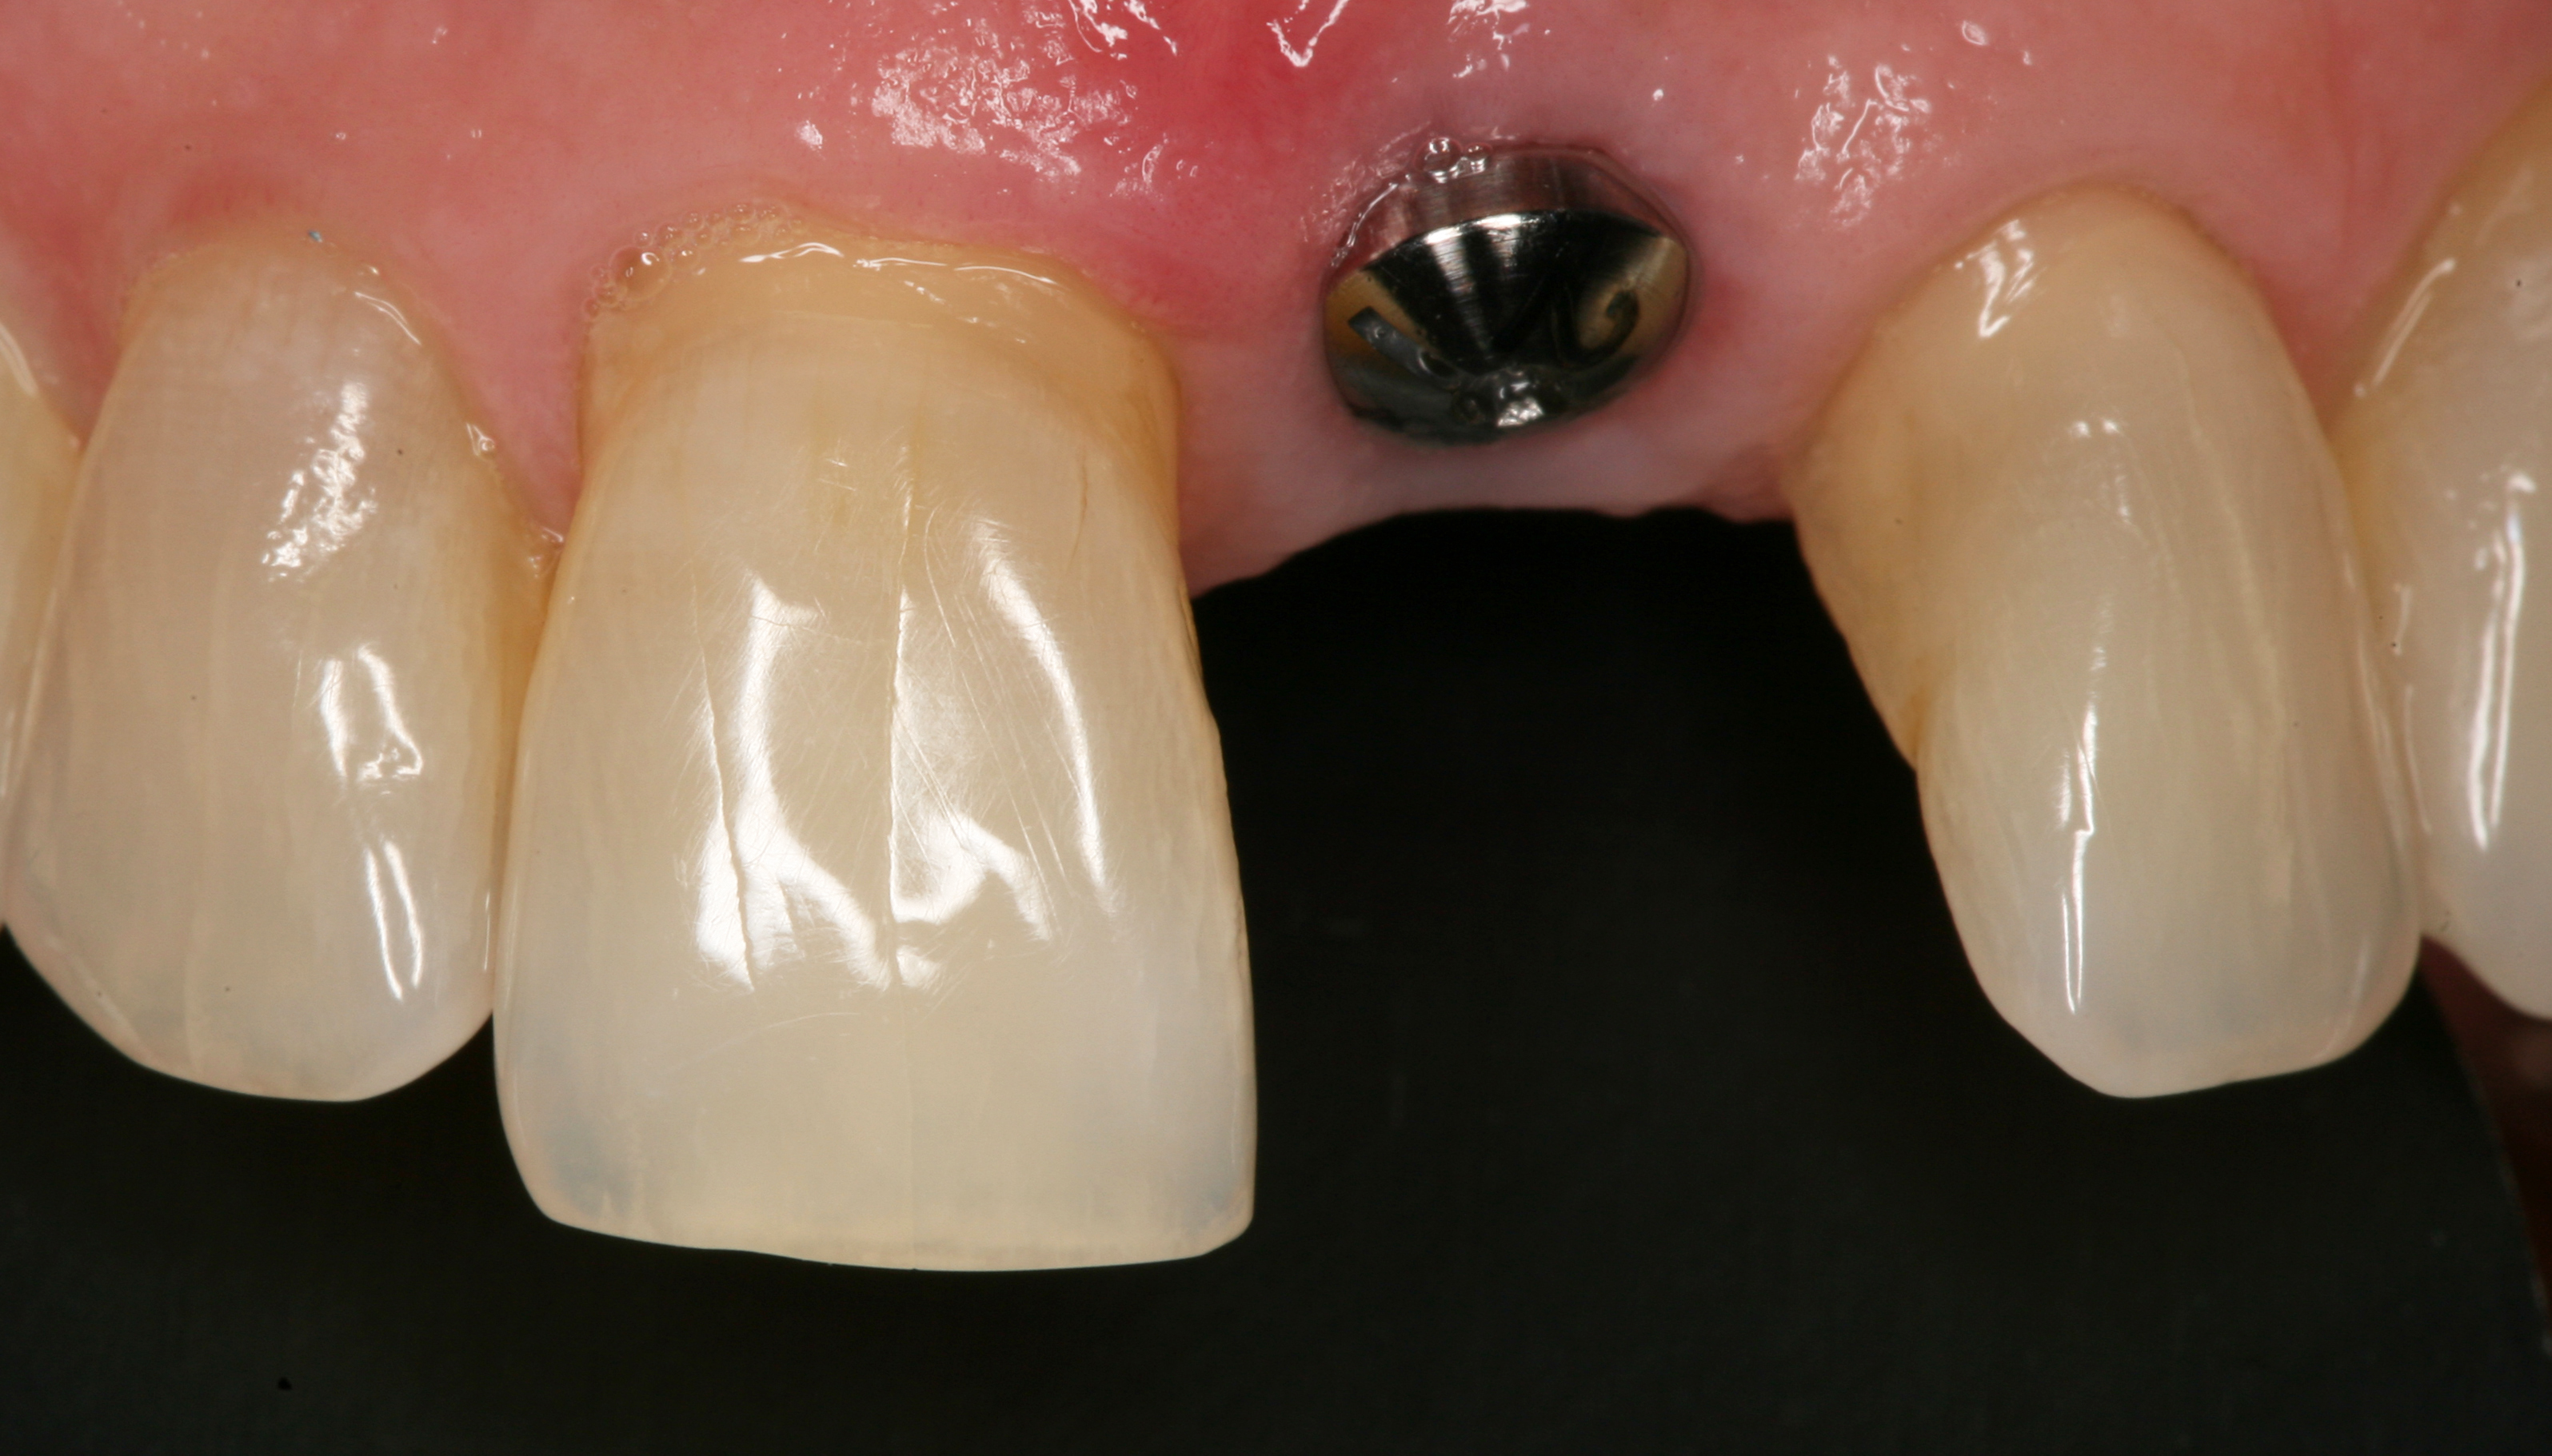 Replacement Of Fractured Maxillary Central Incisor For Org